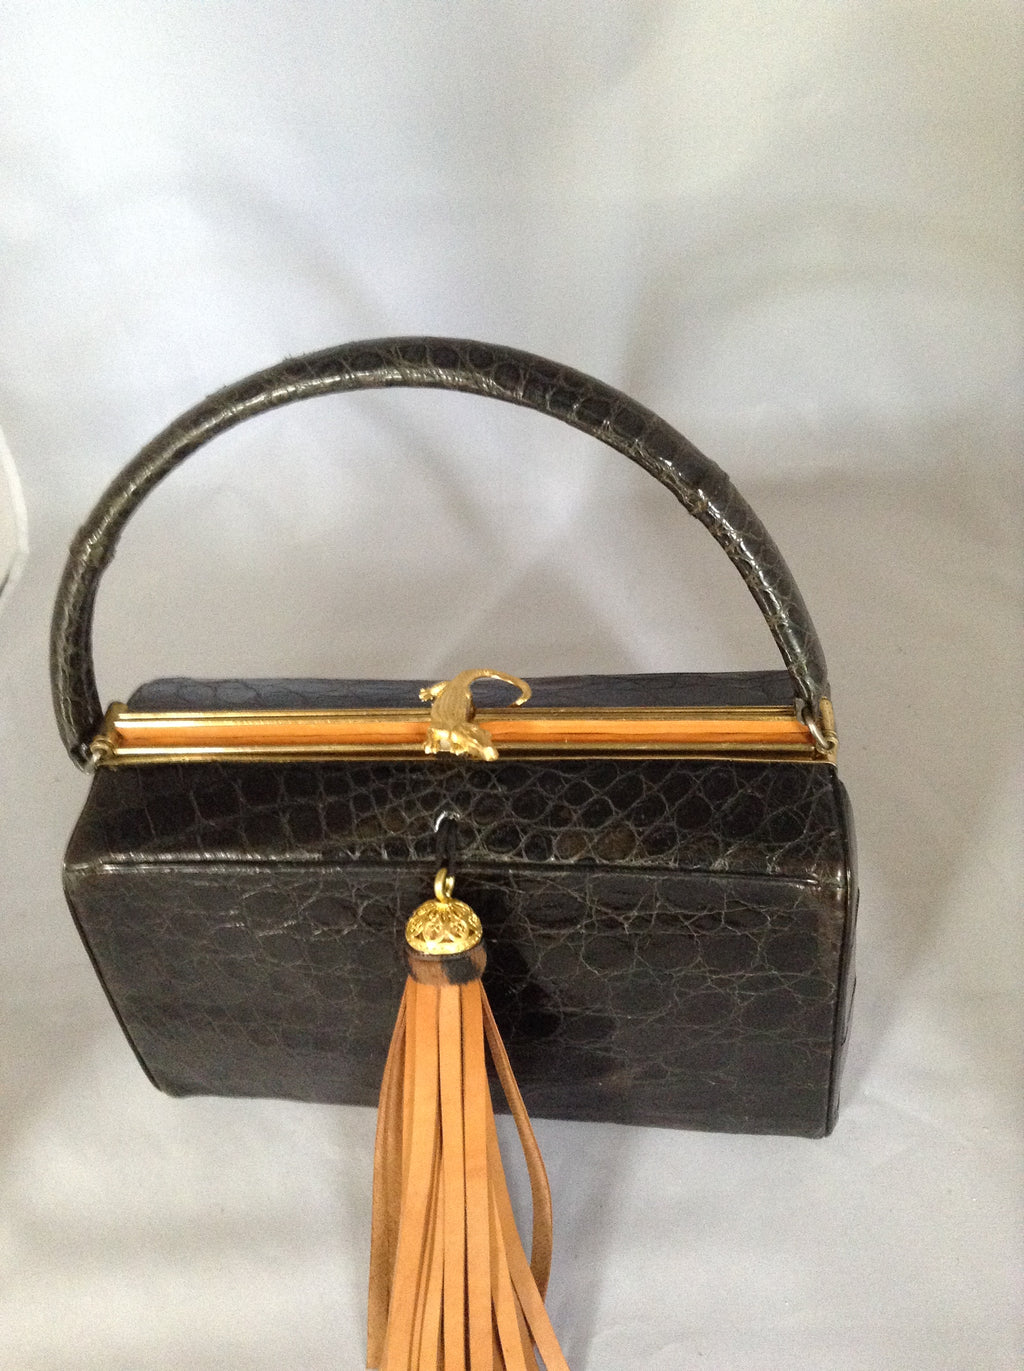 "This magnificent vintage black alligator purse was made in Belgium in the 1950's for Saks and Bonwit Teller. The production was limited, so they are sought after by collectors. This example could retail for over $1000.00 (if you can find one.)  Dimensions - Height 9""; Length 7""; Depth 4"""